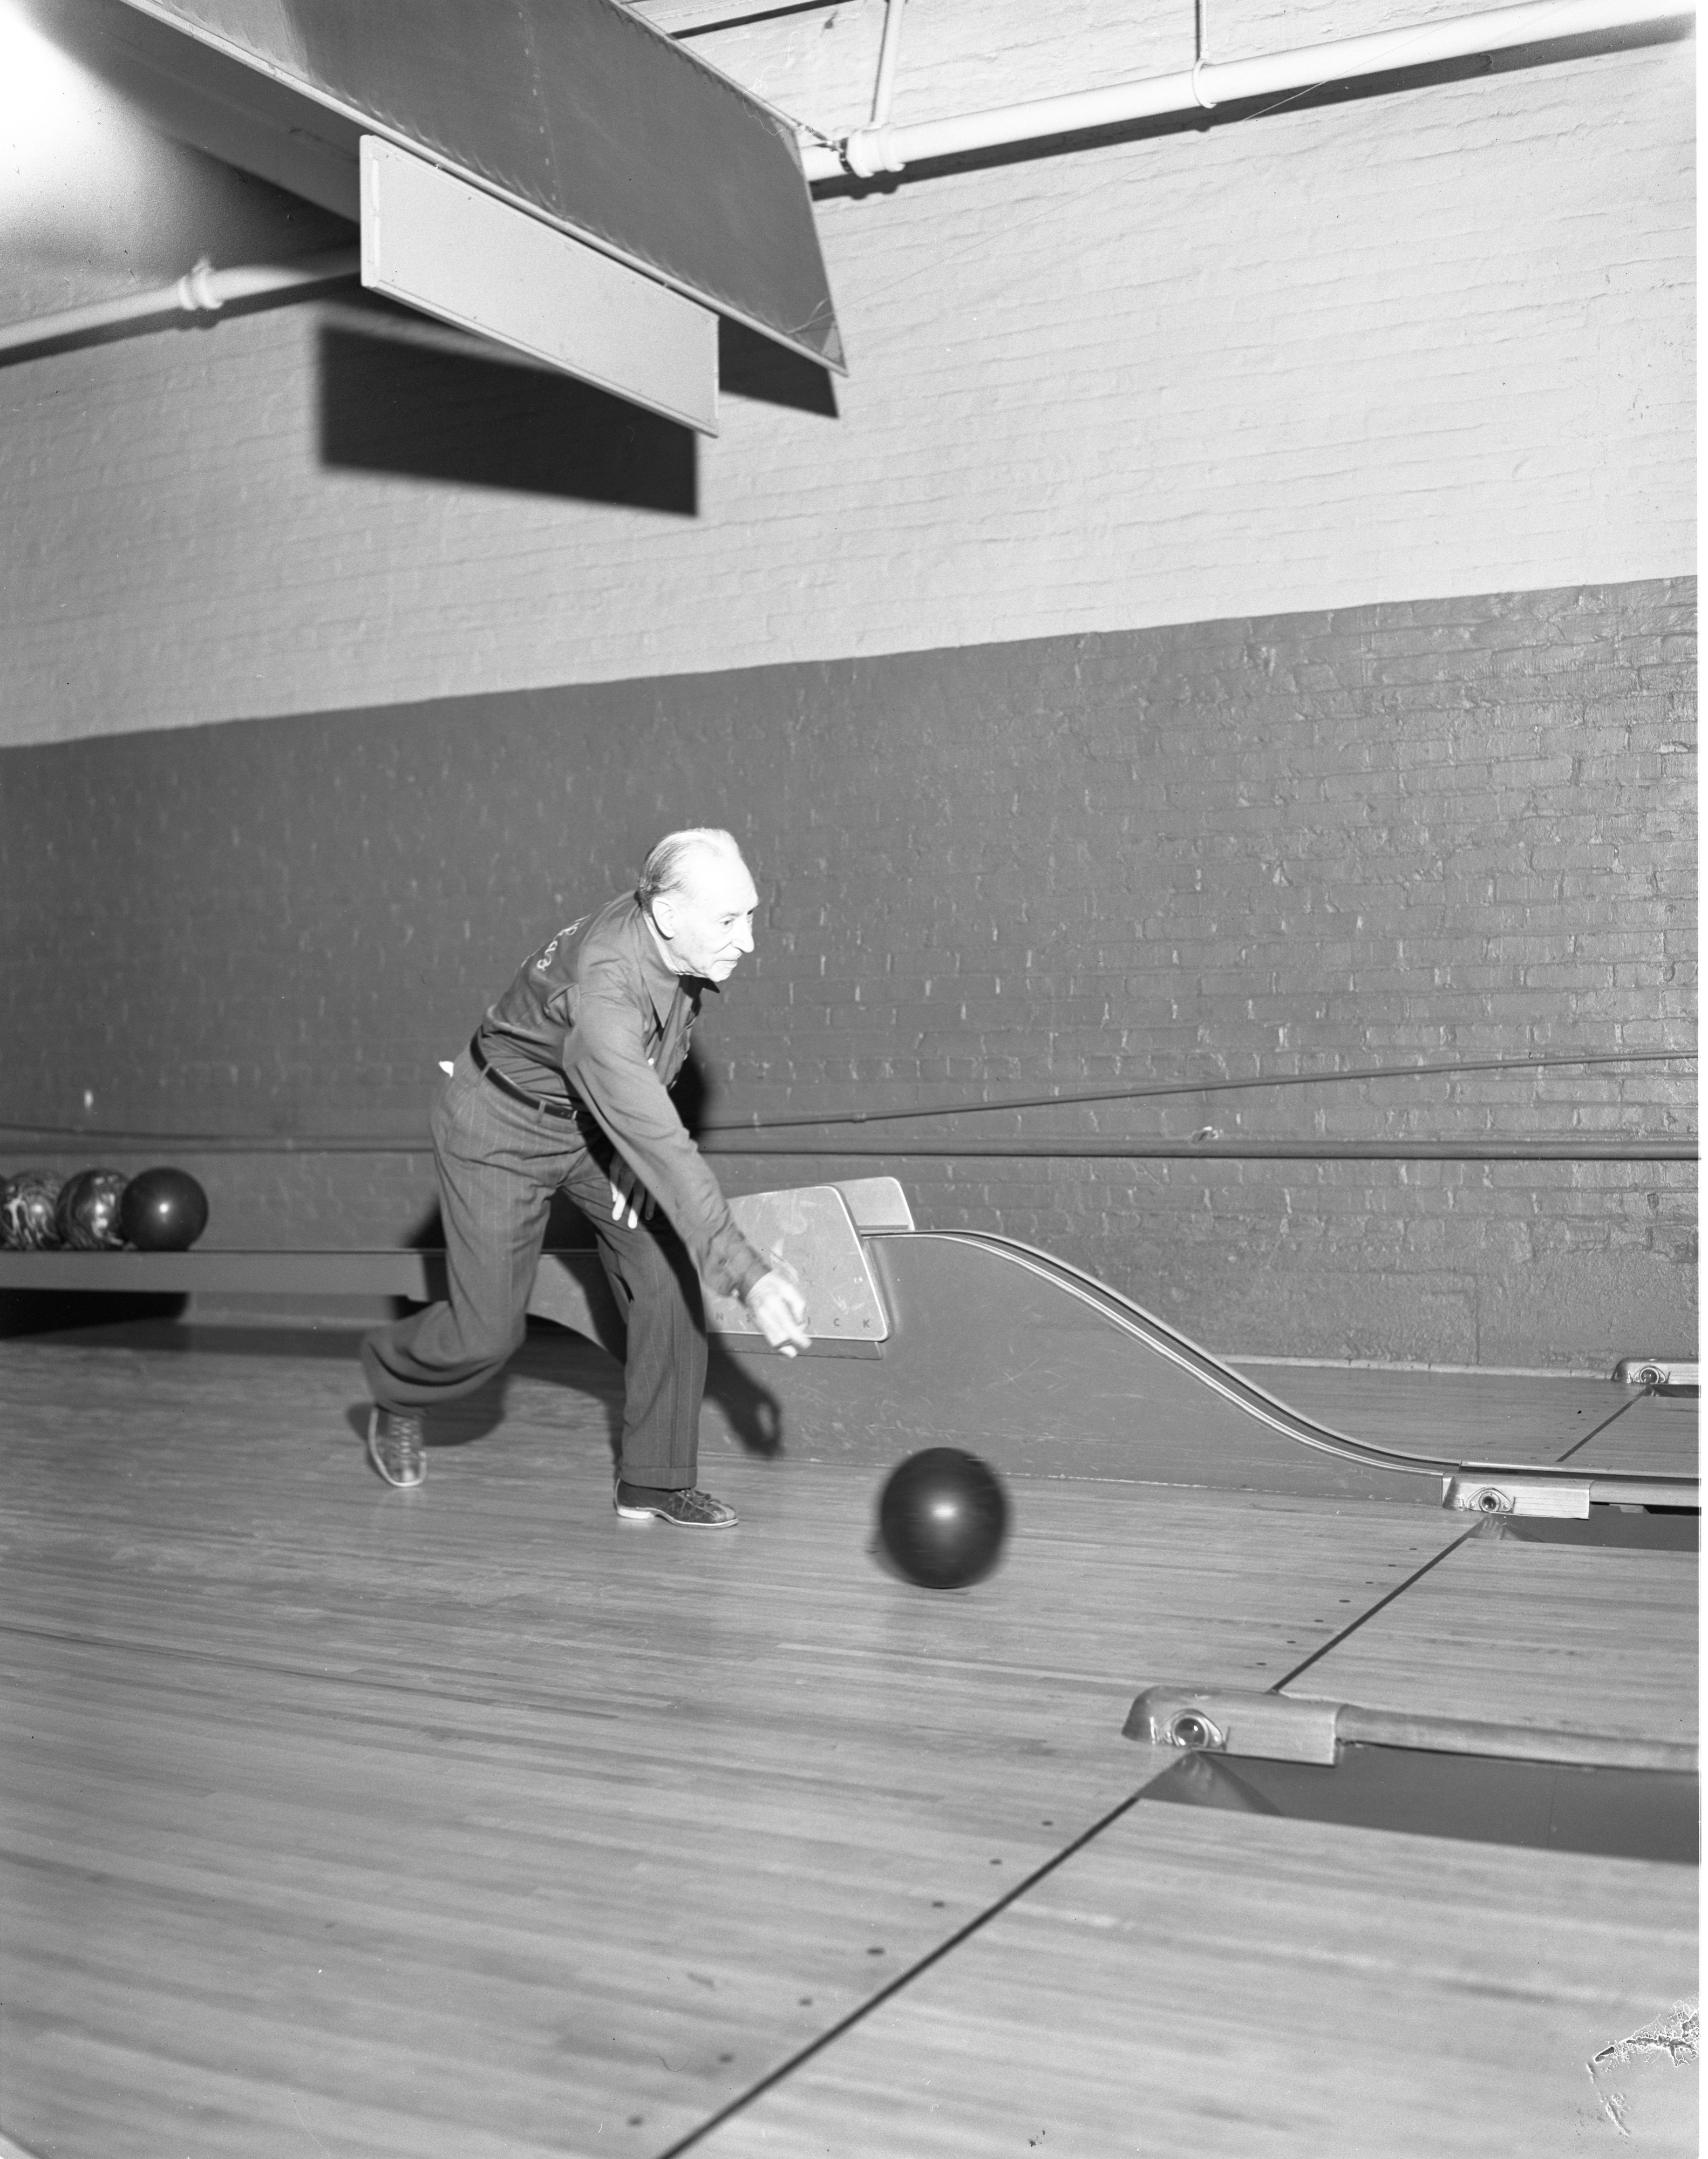 Al Smith, 84-Year-Old Bowler, December 1955 image